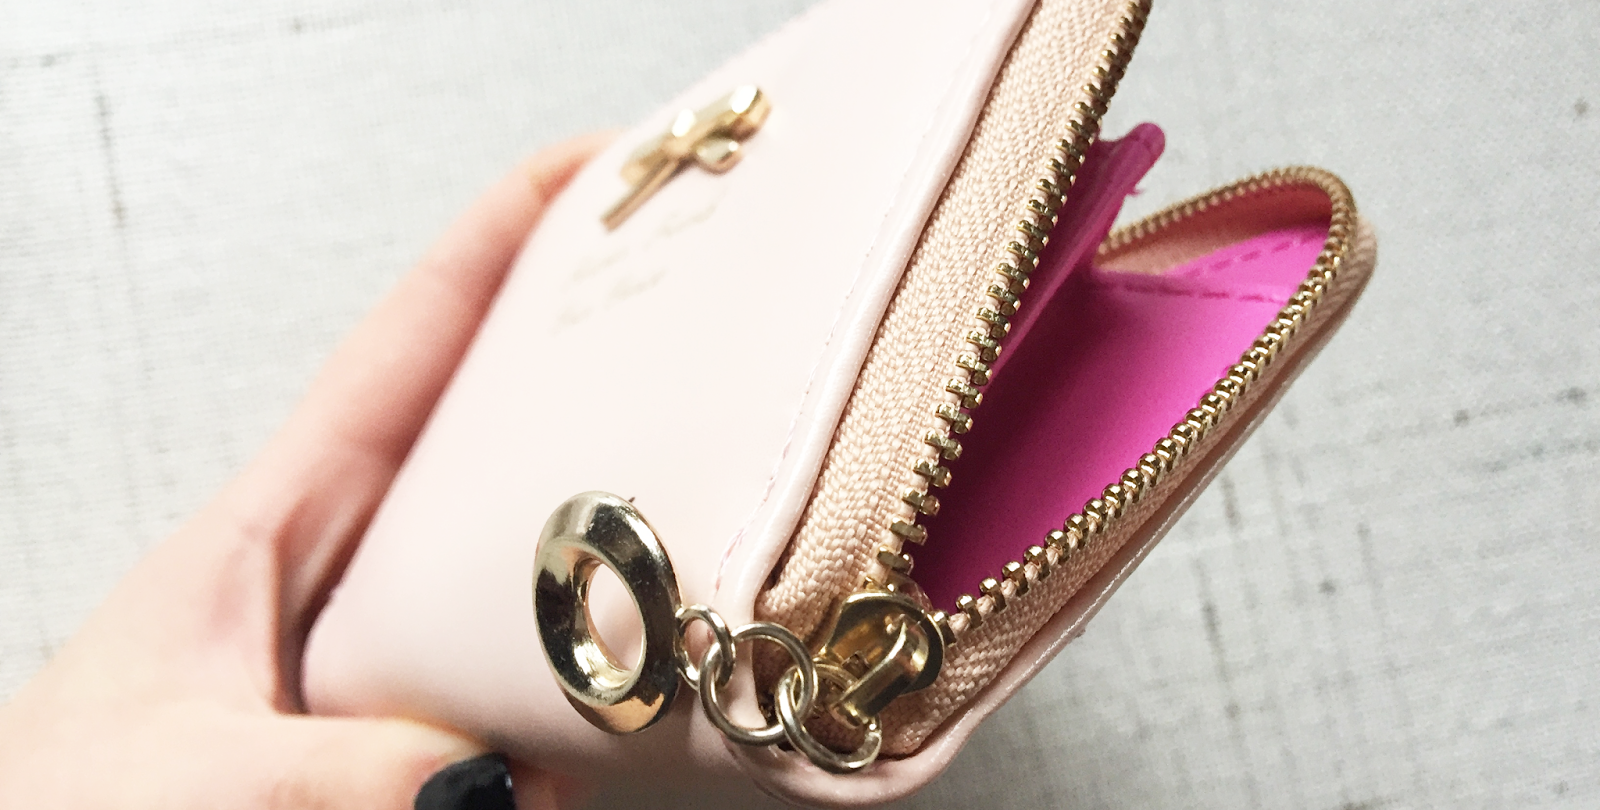 http://www.cndirect.com/2014-new-fashion-colorful-lady-lovely-purse-clutch-women-wallets-short-small-bag-pu-leather-card-hold-5.html?utm_source=blog&utm_medium=banner&utm_campaign=lendy319